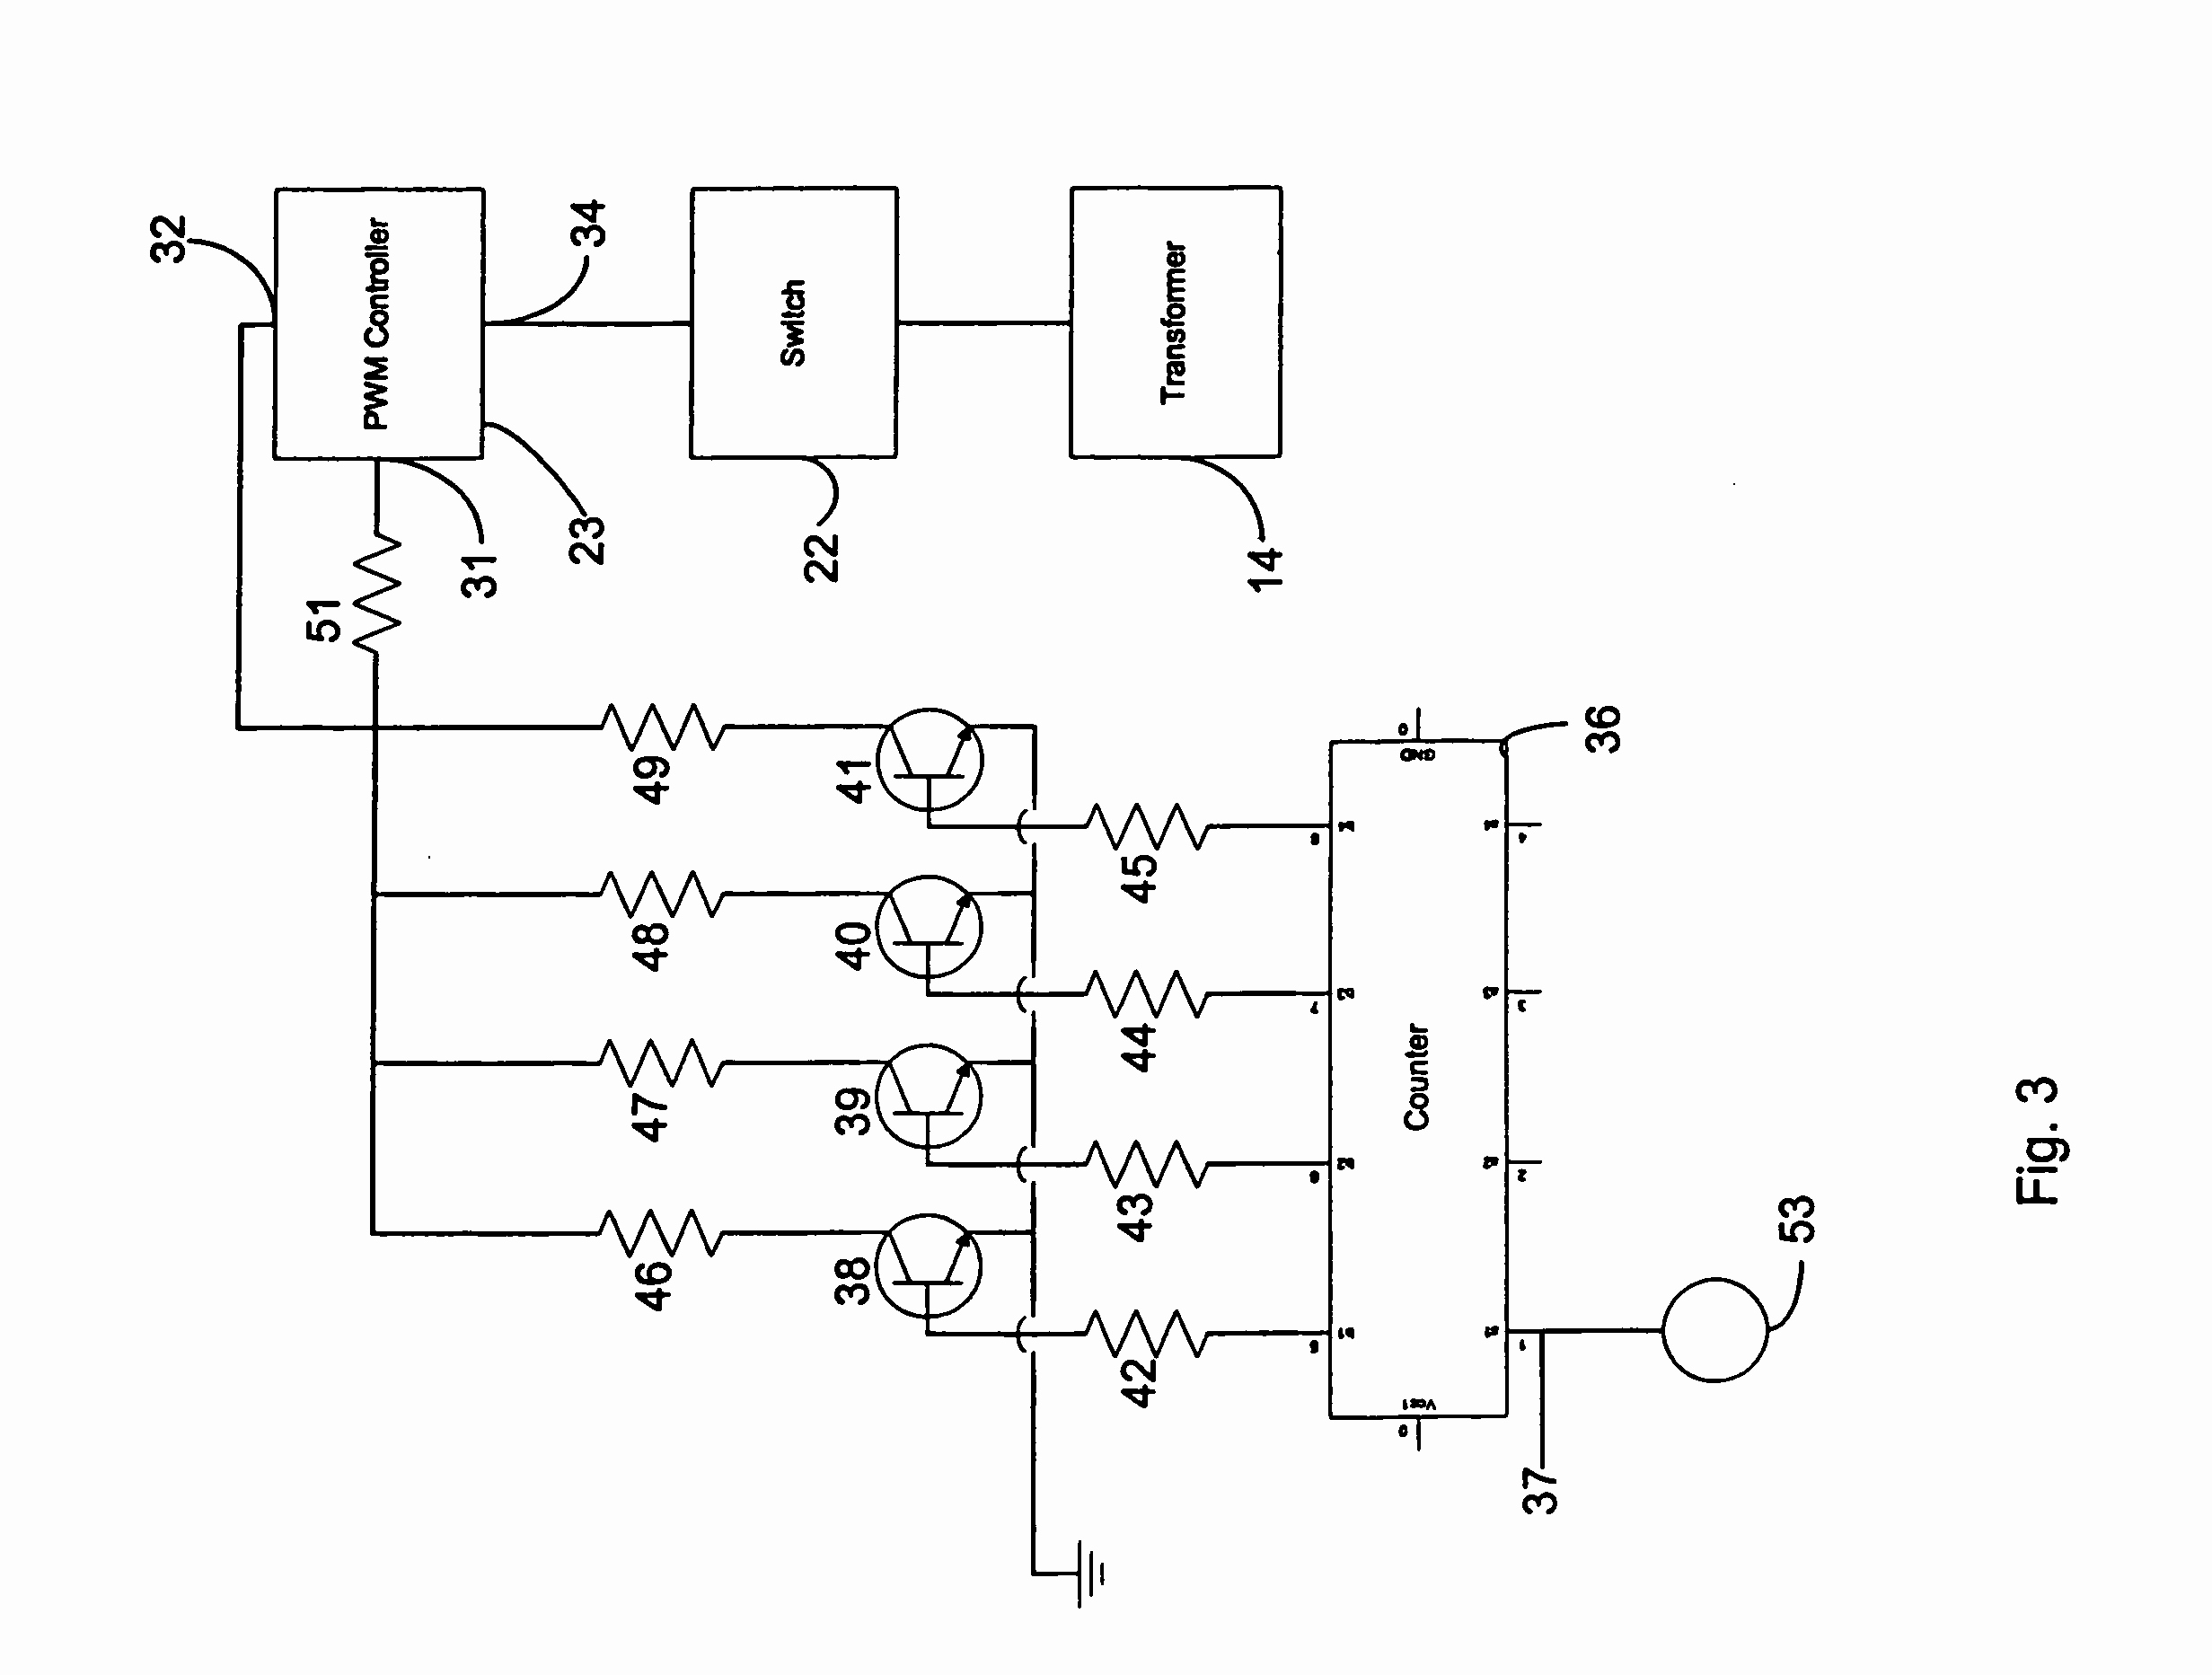 Number 1014 Century Battery Charger Wiring Diagram | Wiring Library - Century Battery Charger Wiring Diagram